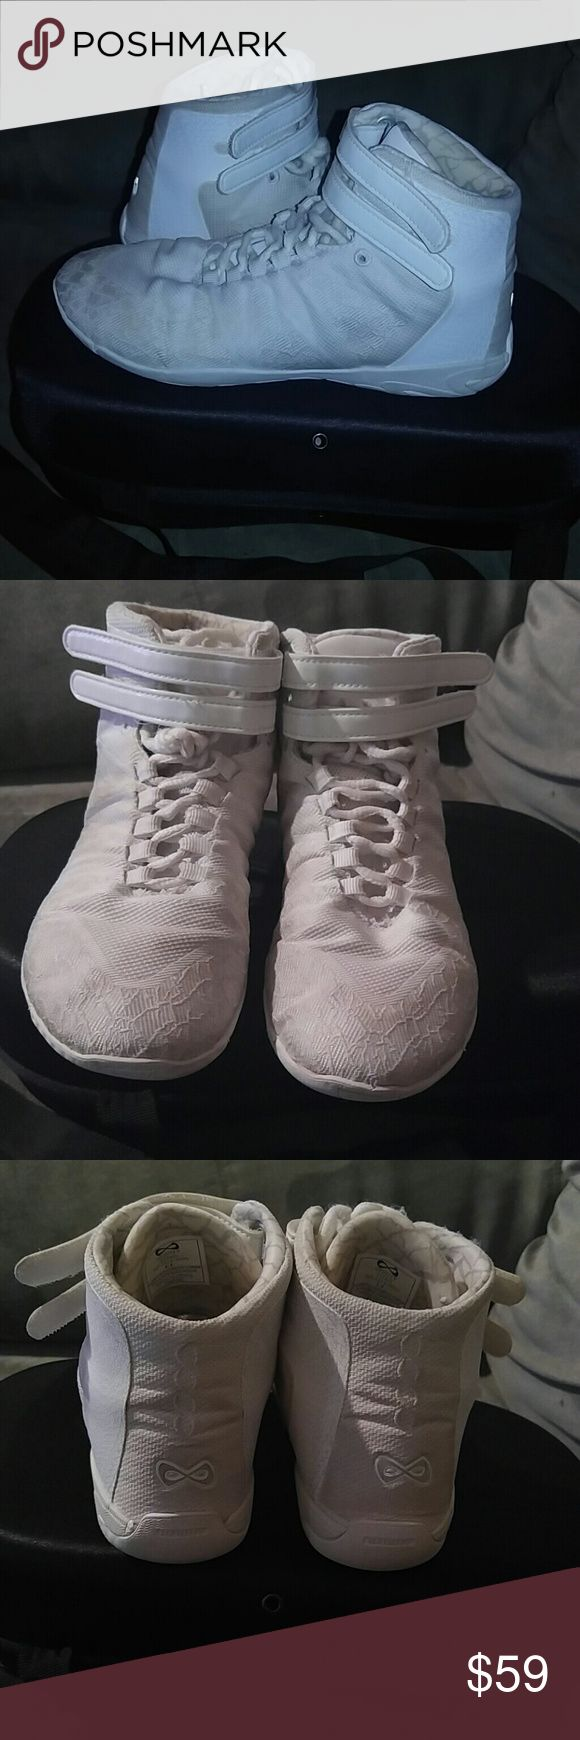 Nfinity Titan High Top Cheer shoes Good condition, has mild darkening in various places. Can be cleaned to look perfect. Comes with black Nfinity Titan Case. Size 5.5 nfinity Shoes Athletic Shoes